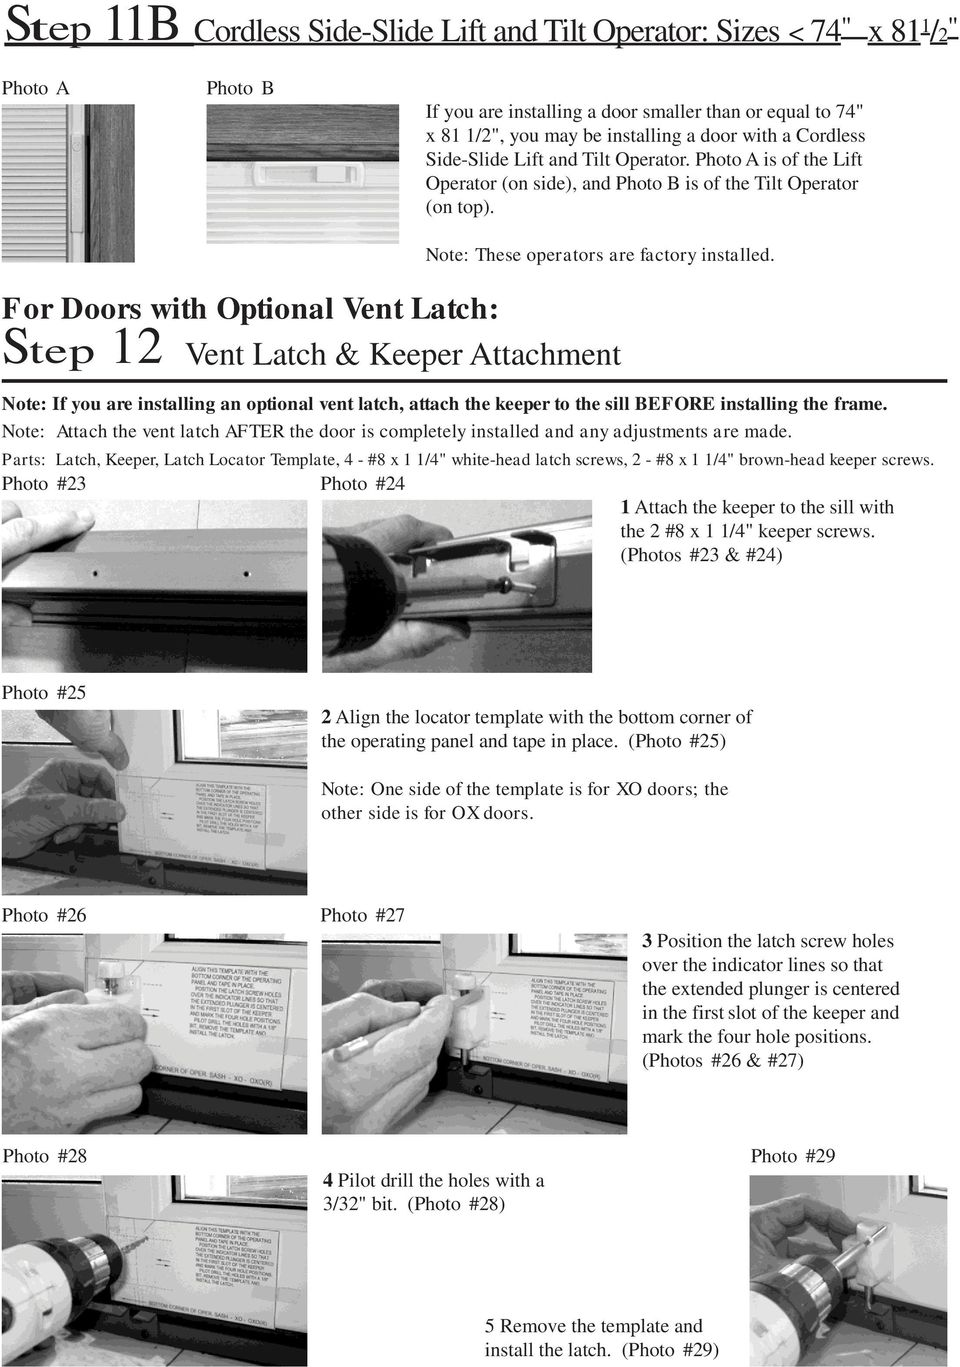 For Doors with Optional Vent Latch: Step 12 Vent Latch & Keeper Attachment Note: If you are installing an optional vent latch, attach the keeper to the sill BEFORE installing the frame.